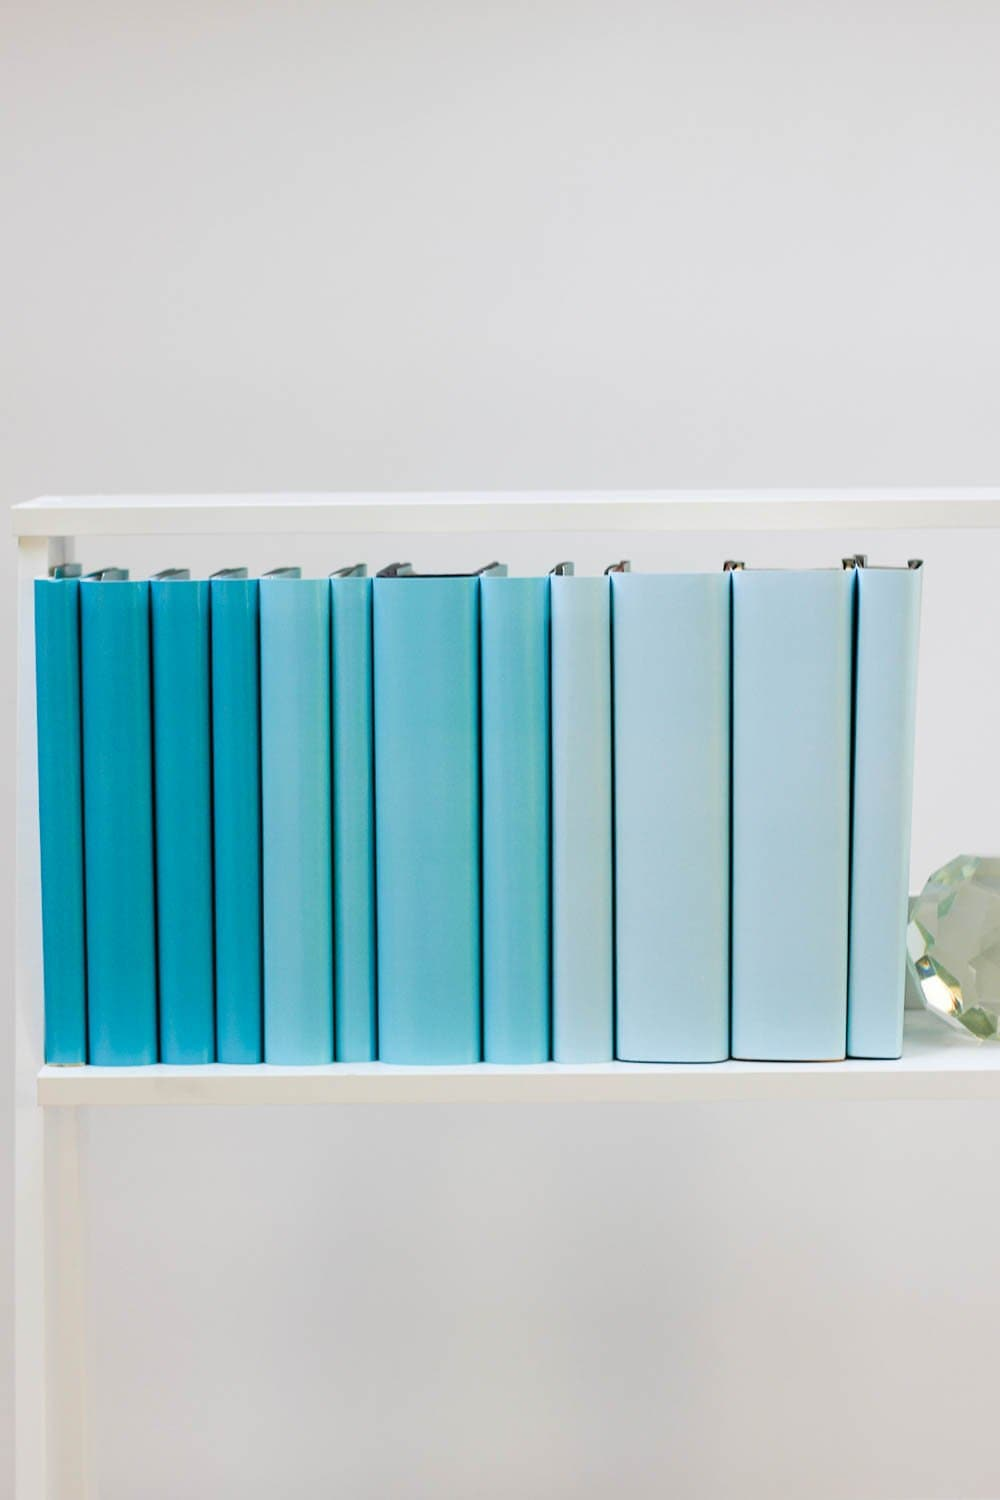 Set of styled blue books made with blue book covers